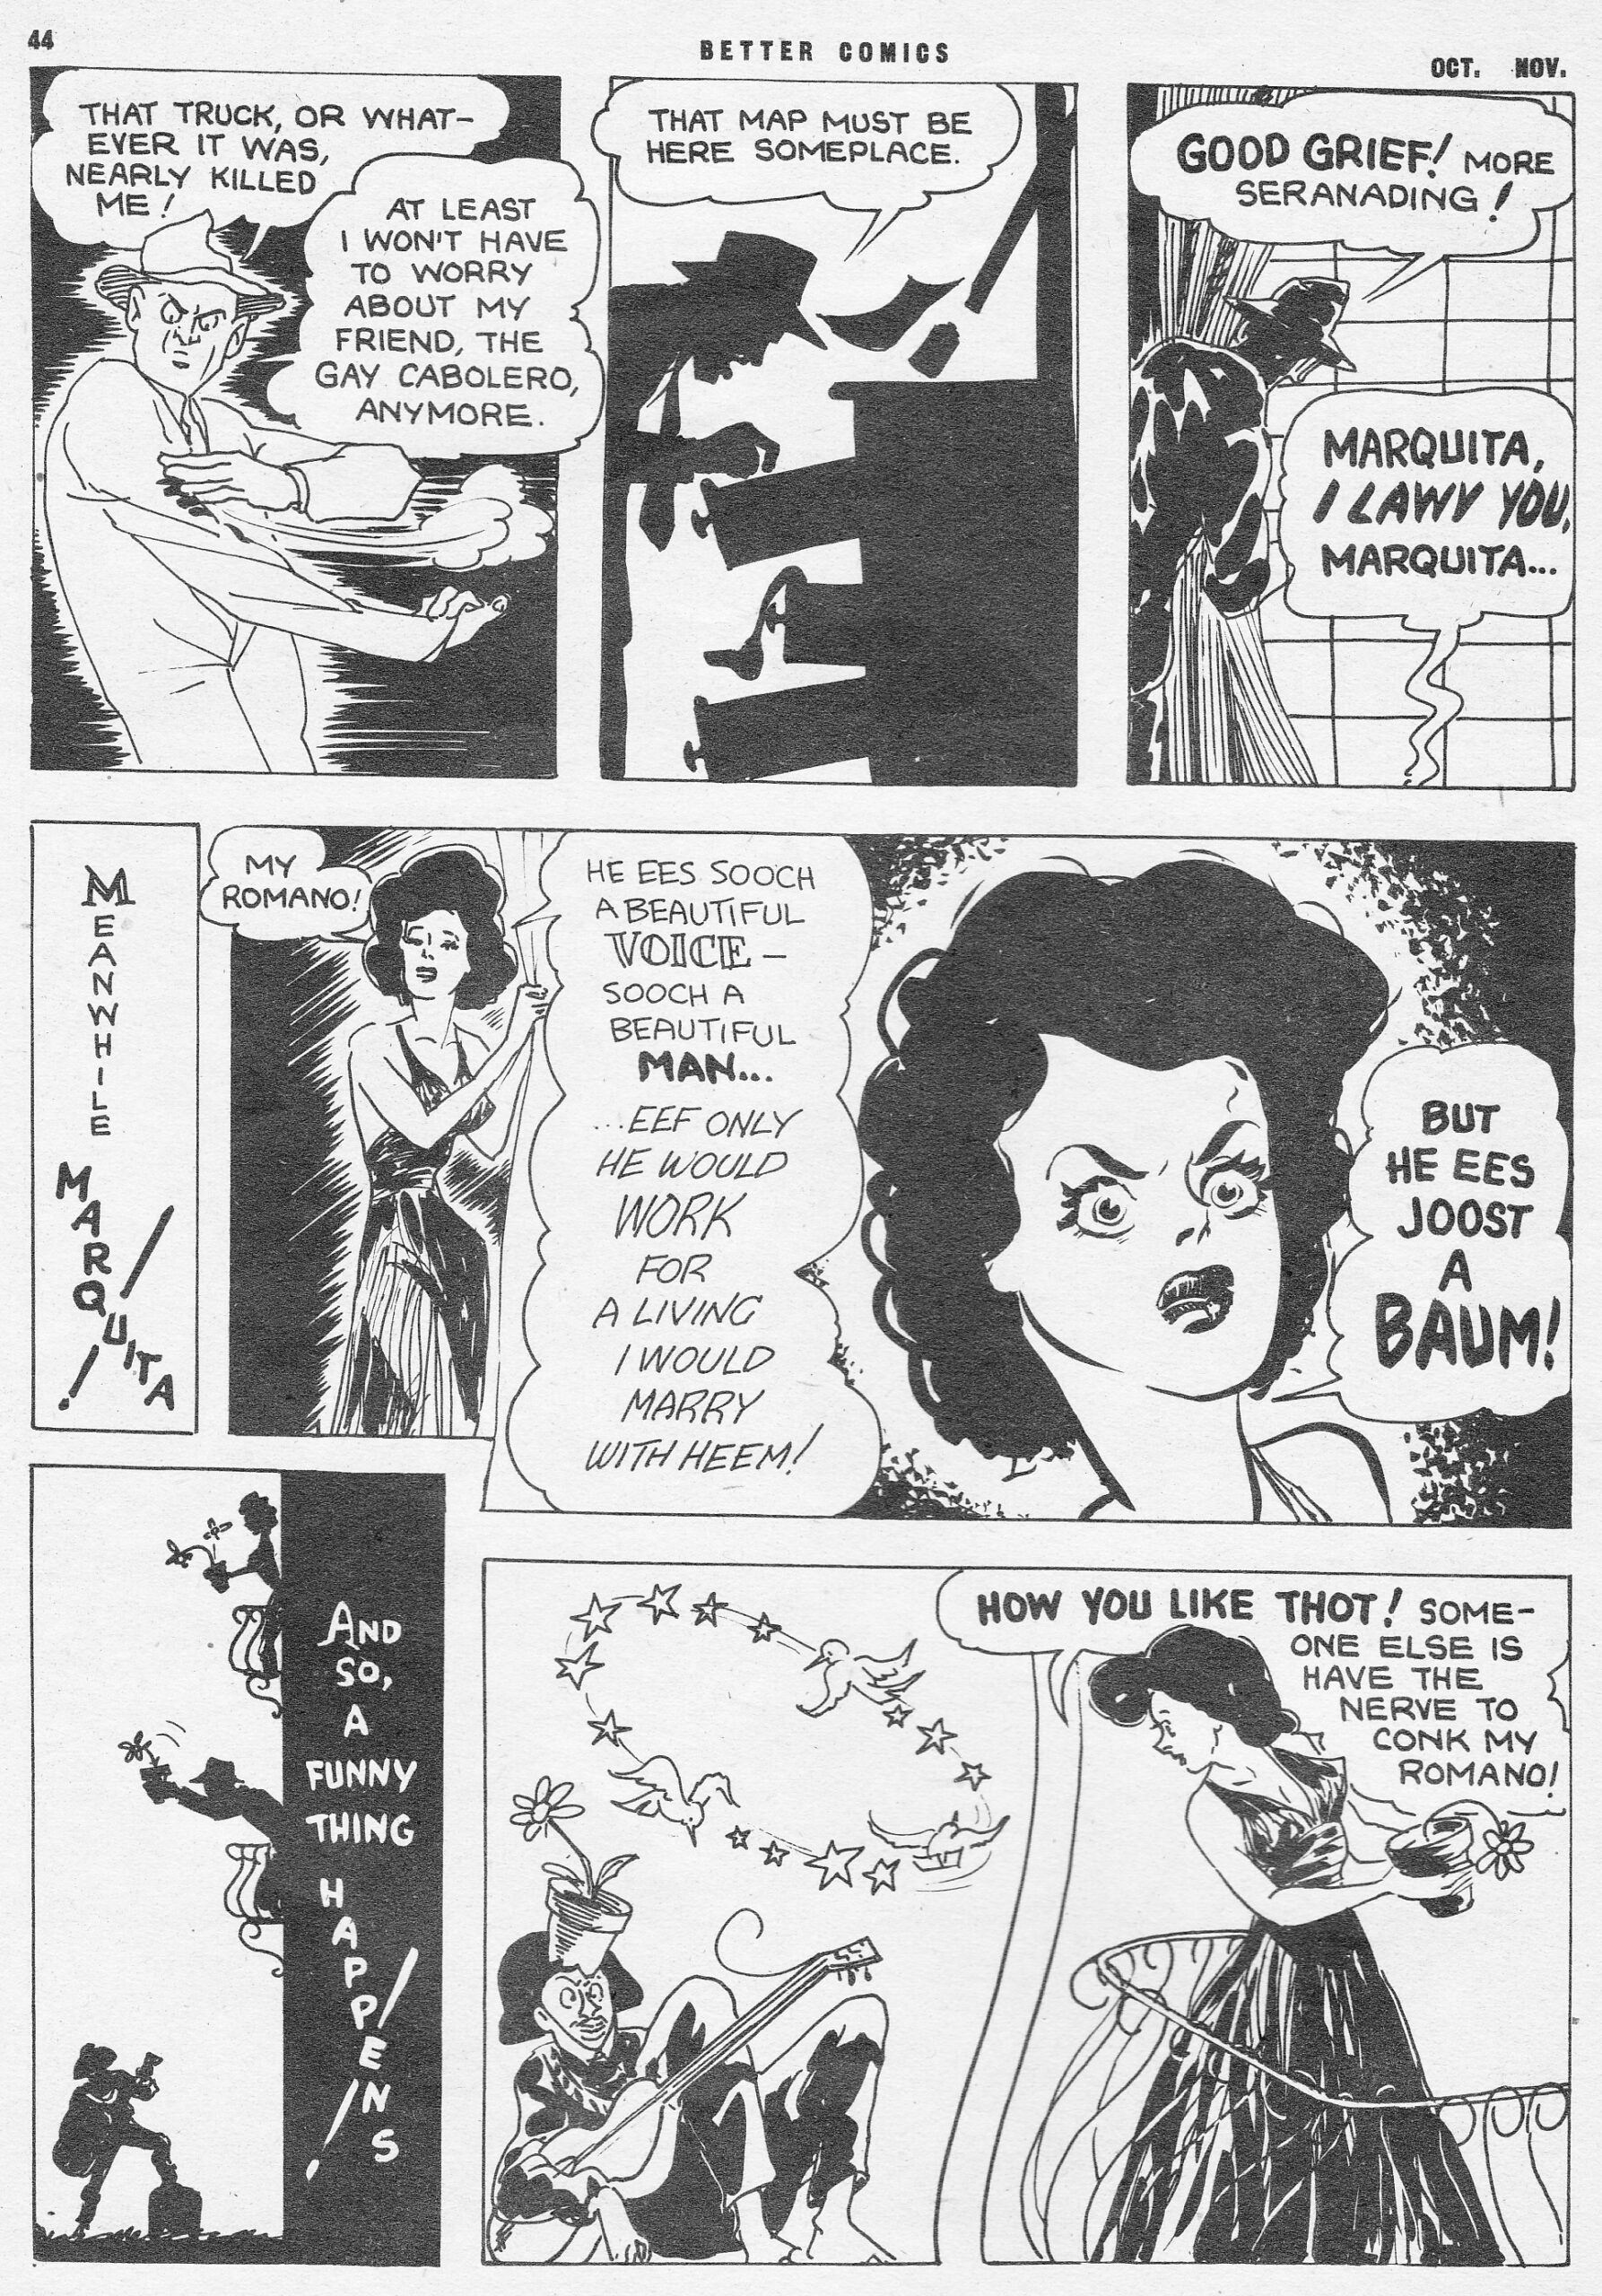 C:\Users\Robert\Documents\CARTOONING ILLUSTRATION ANIMATION\IMAGE CARTOON\IMAGE CARTOON S\SENORITA MARQUITA, Better Comics, 3-6, O-N 1944, 44.jpg